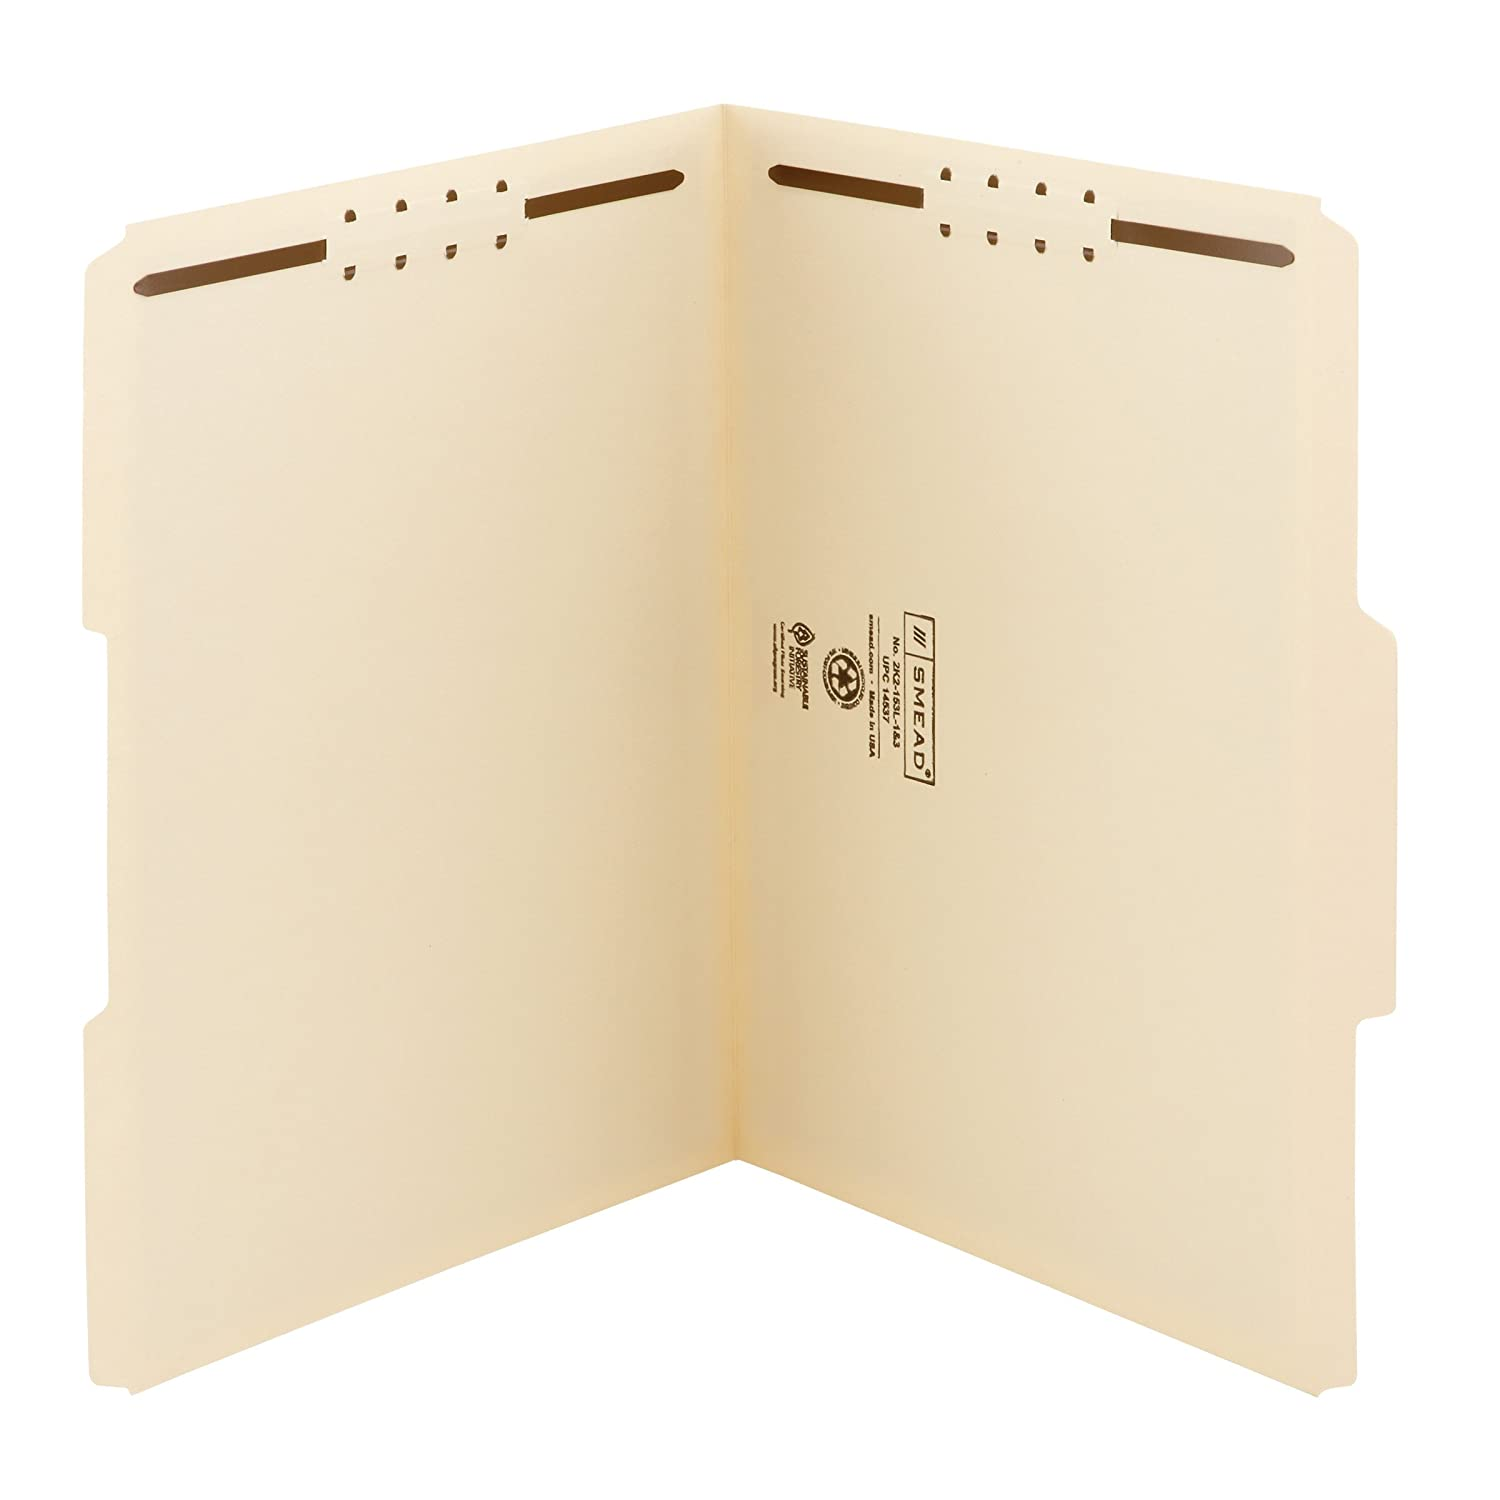 File Folders | Amazon.com | Office & School Supplies - Education ...